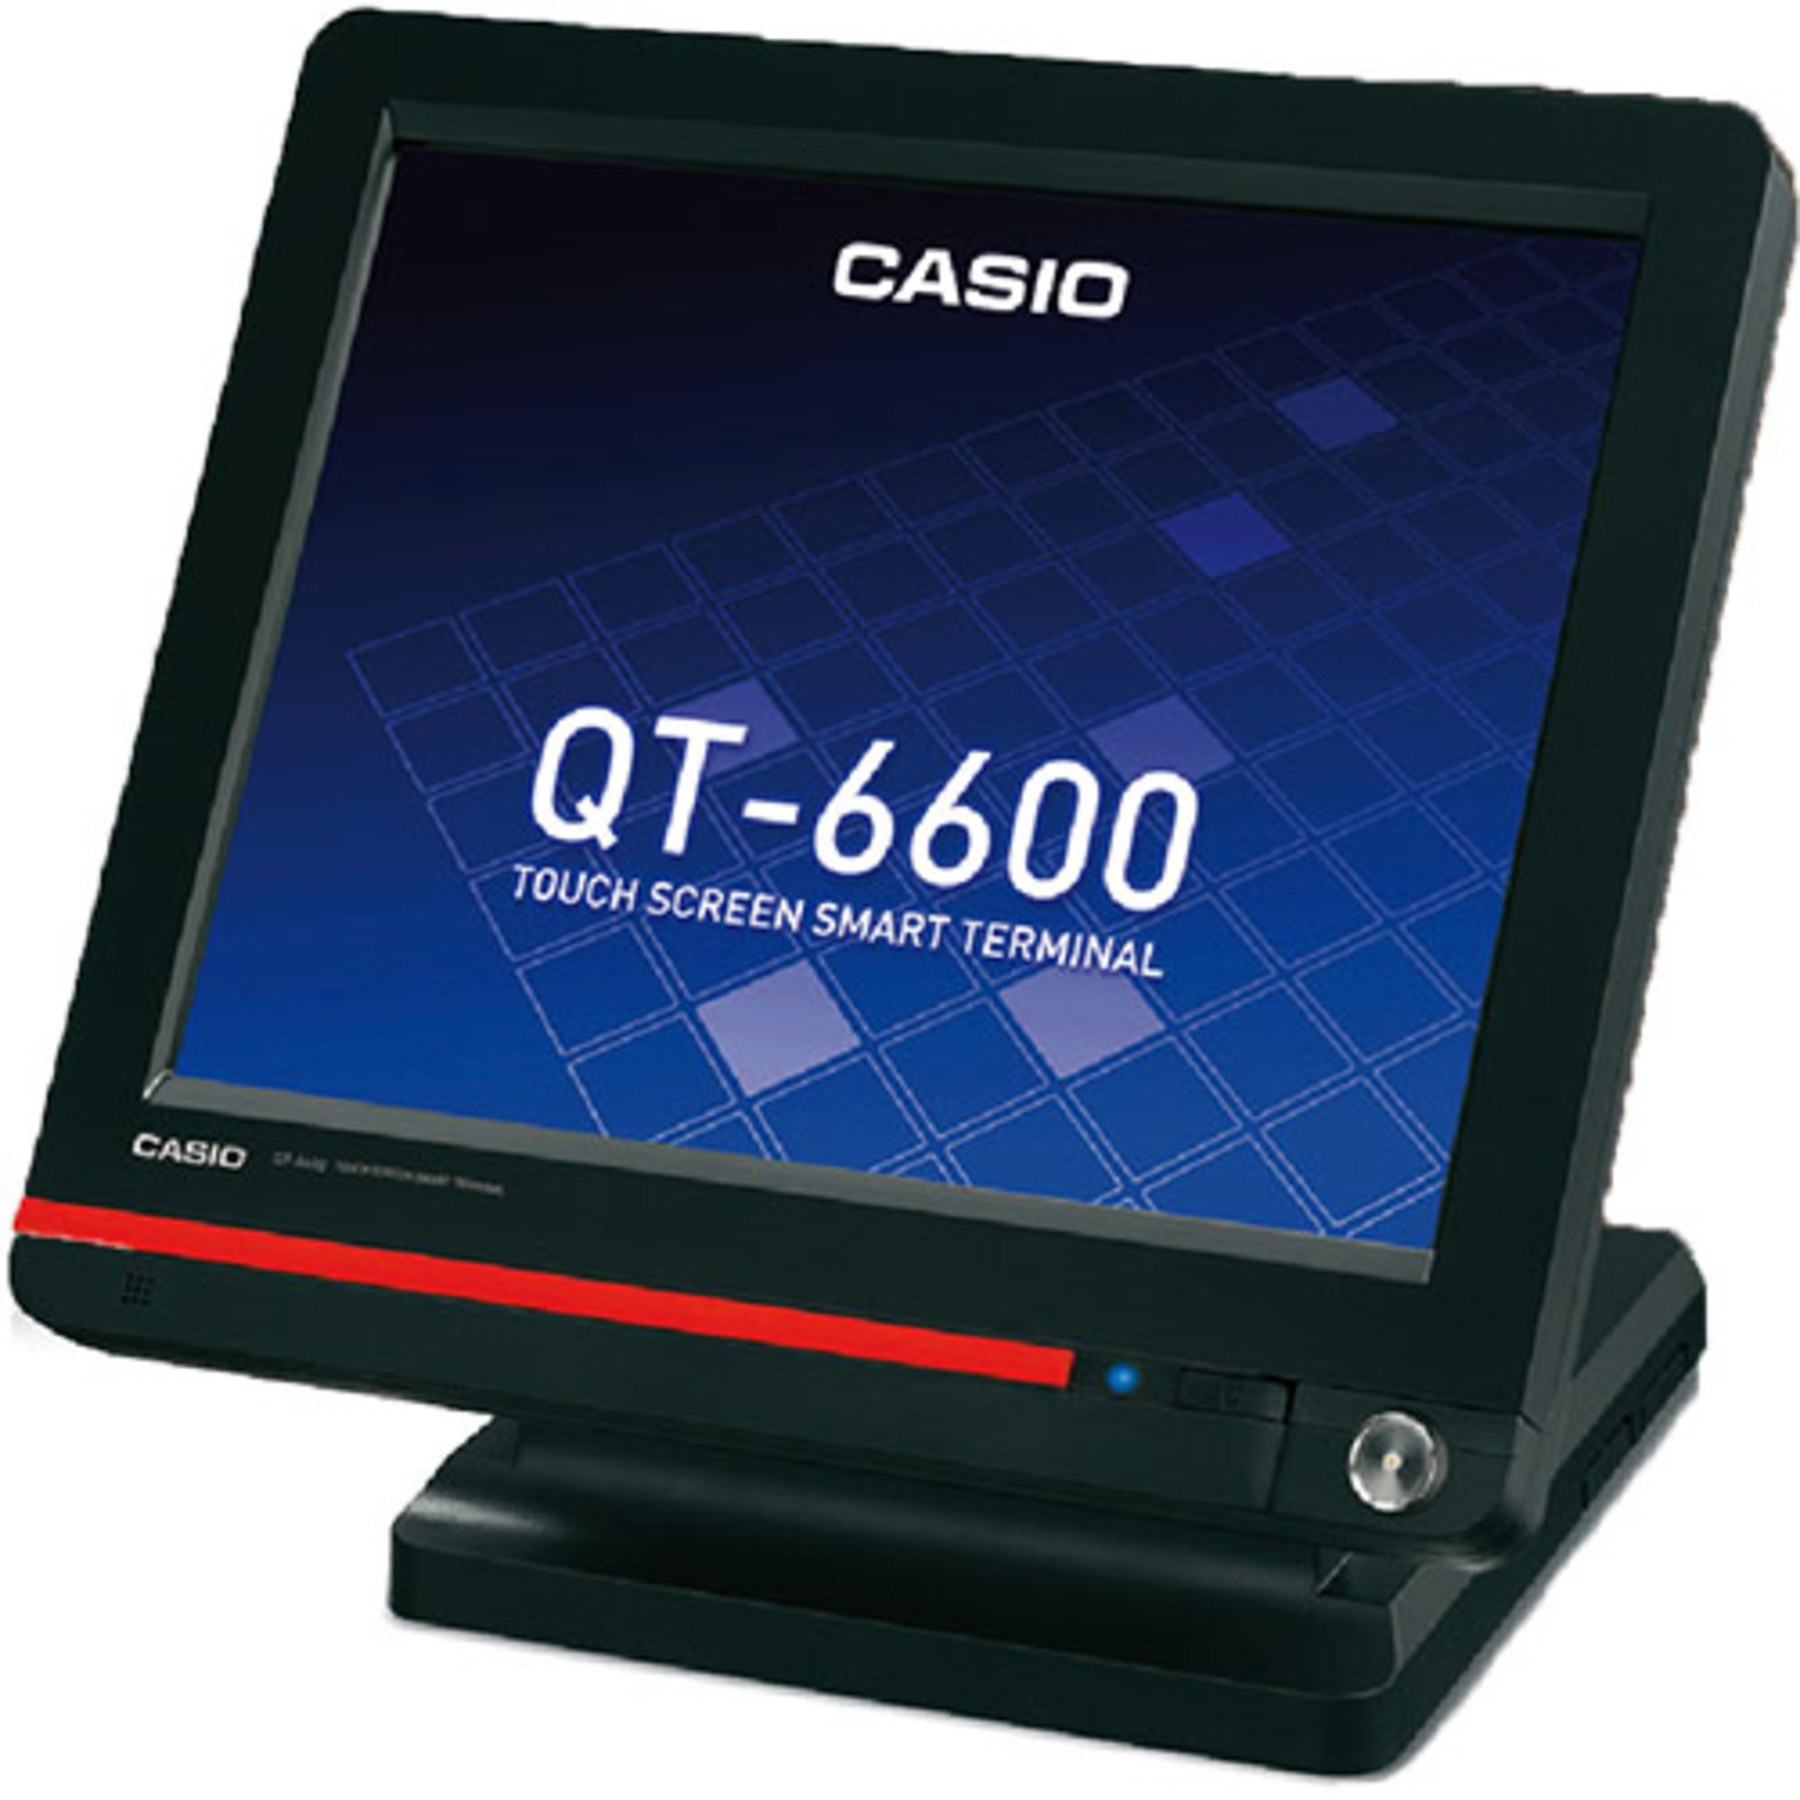 Casio Qt 6600 Touch Screen Cash Drawers Ireland